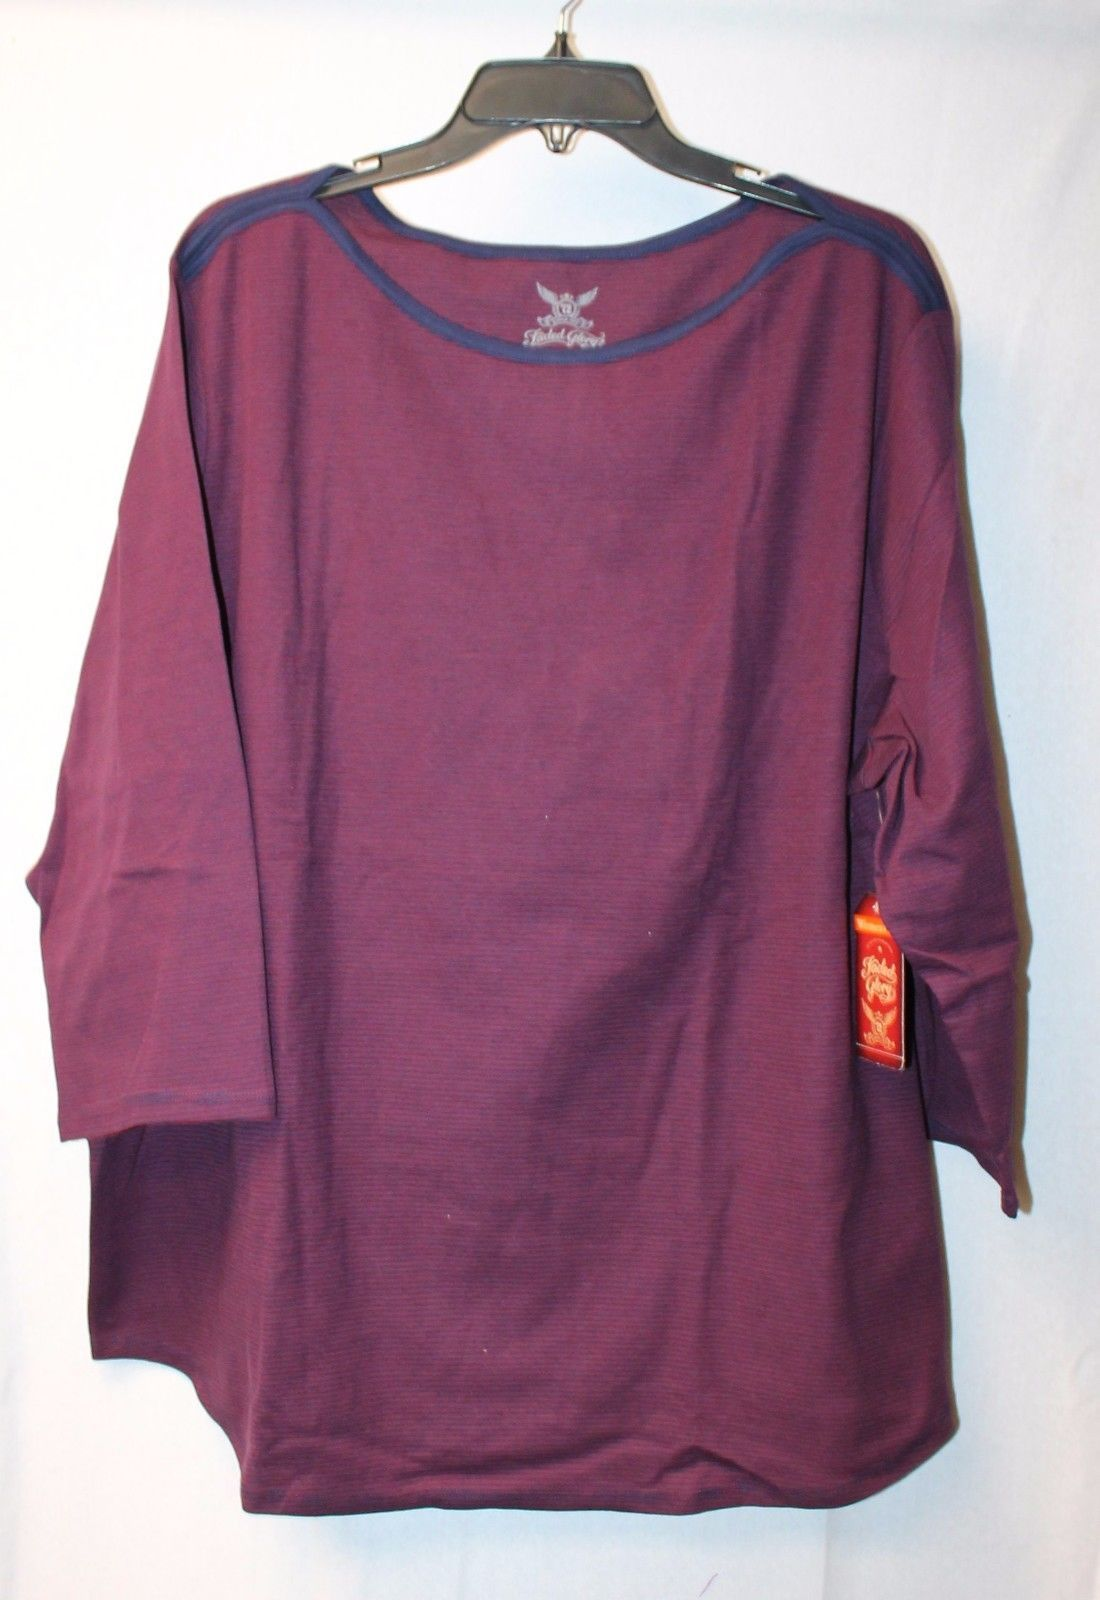 dddd1c2b878be S l1600. S l1600. Previous. NEW FADED GLORY WOMENS PLUS SIZE 4X 26W 28W  PURPLE BOATNECK STRIPED TEE SHIRT